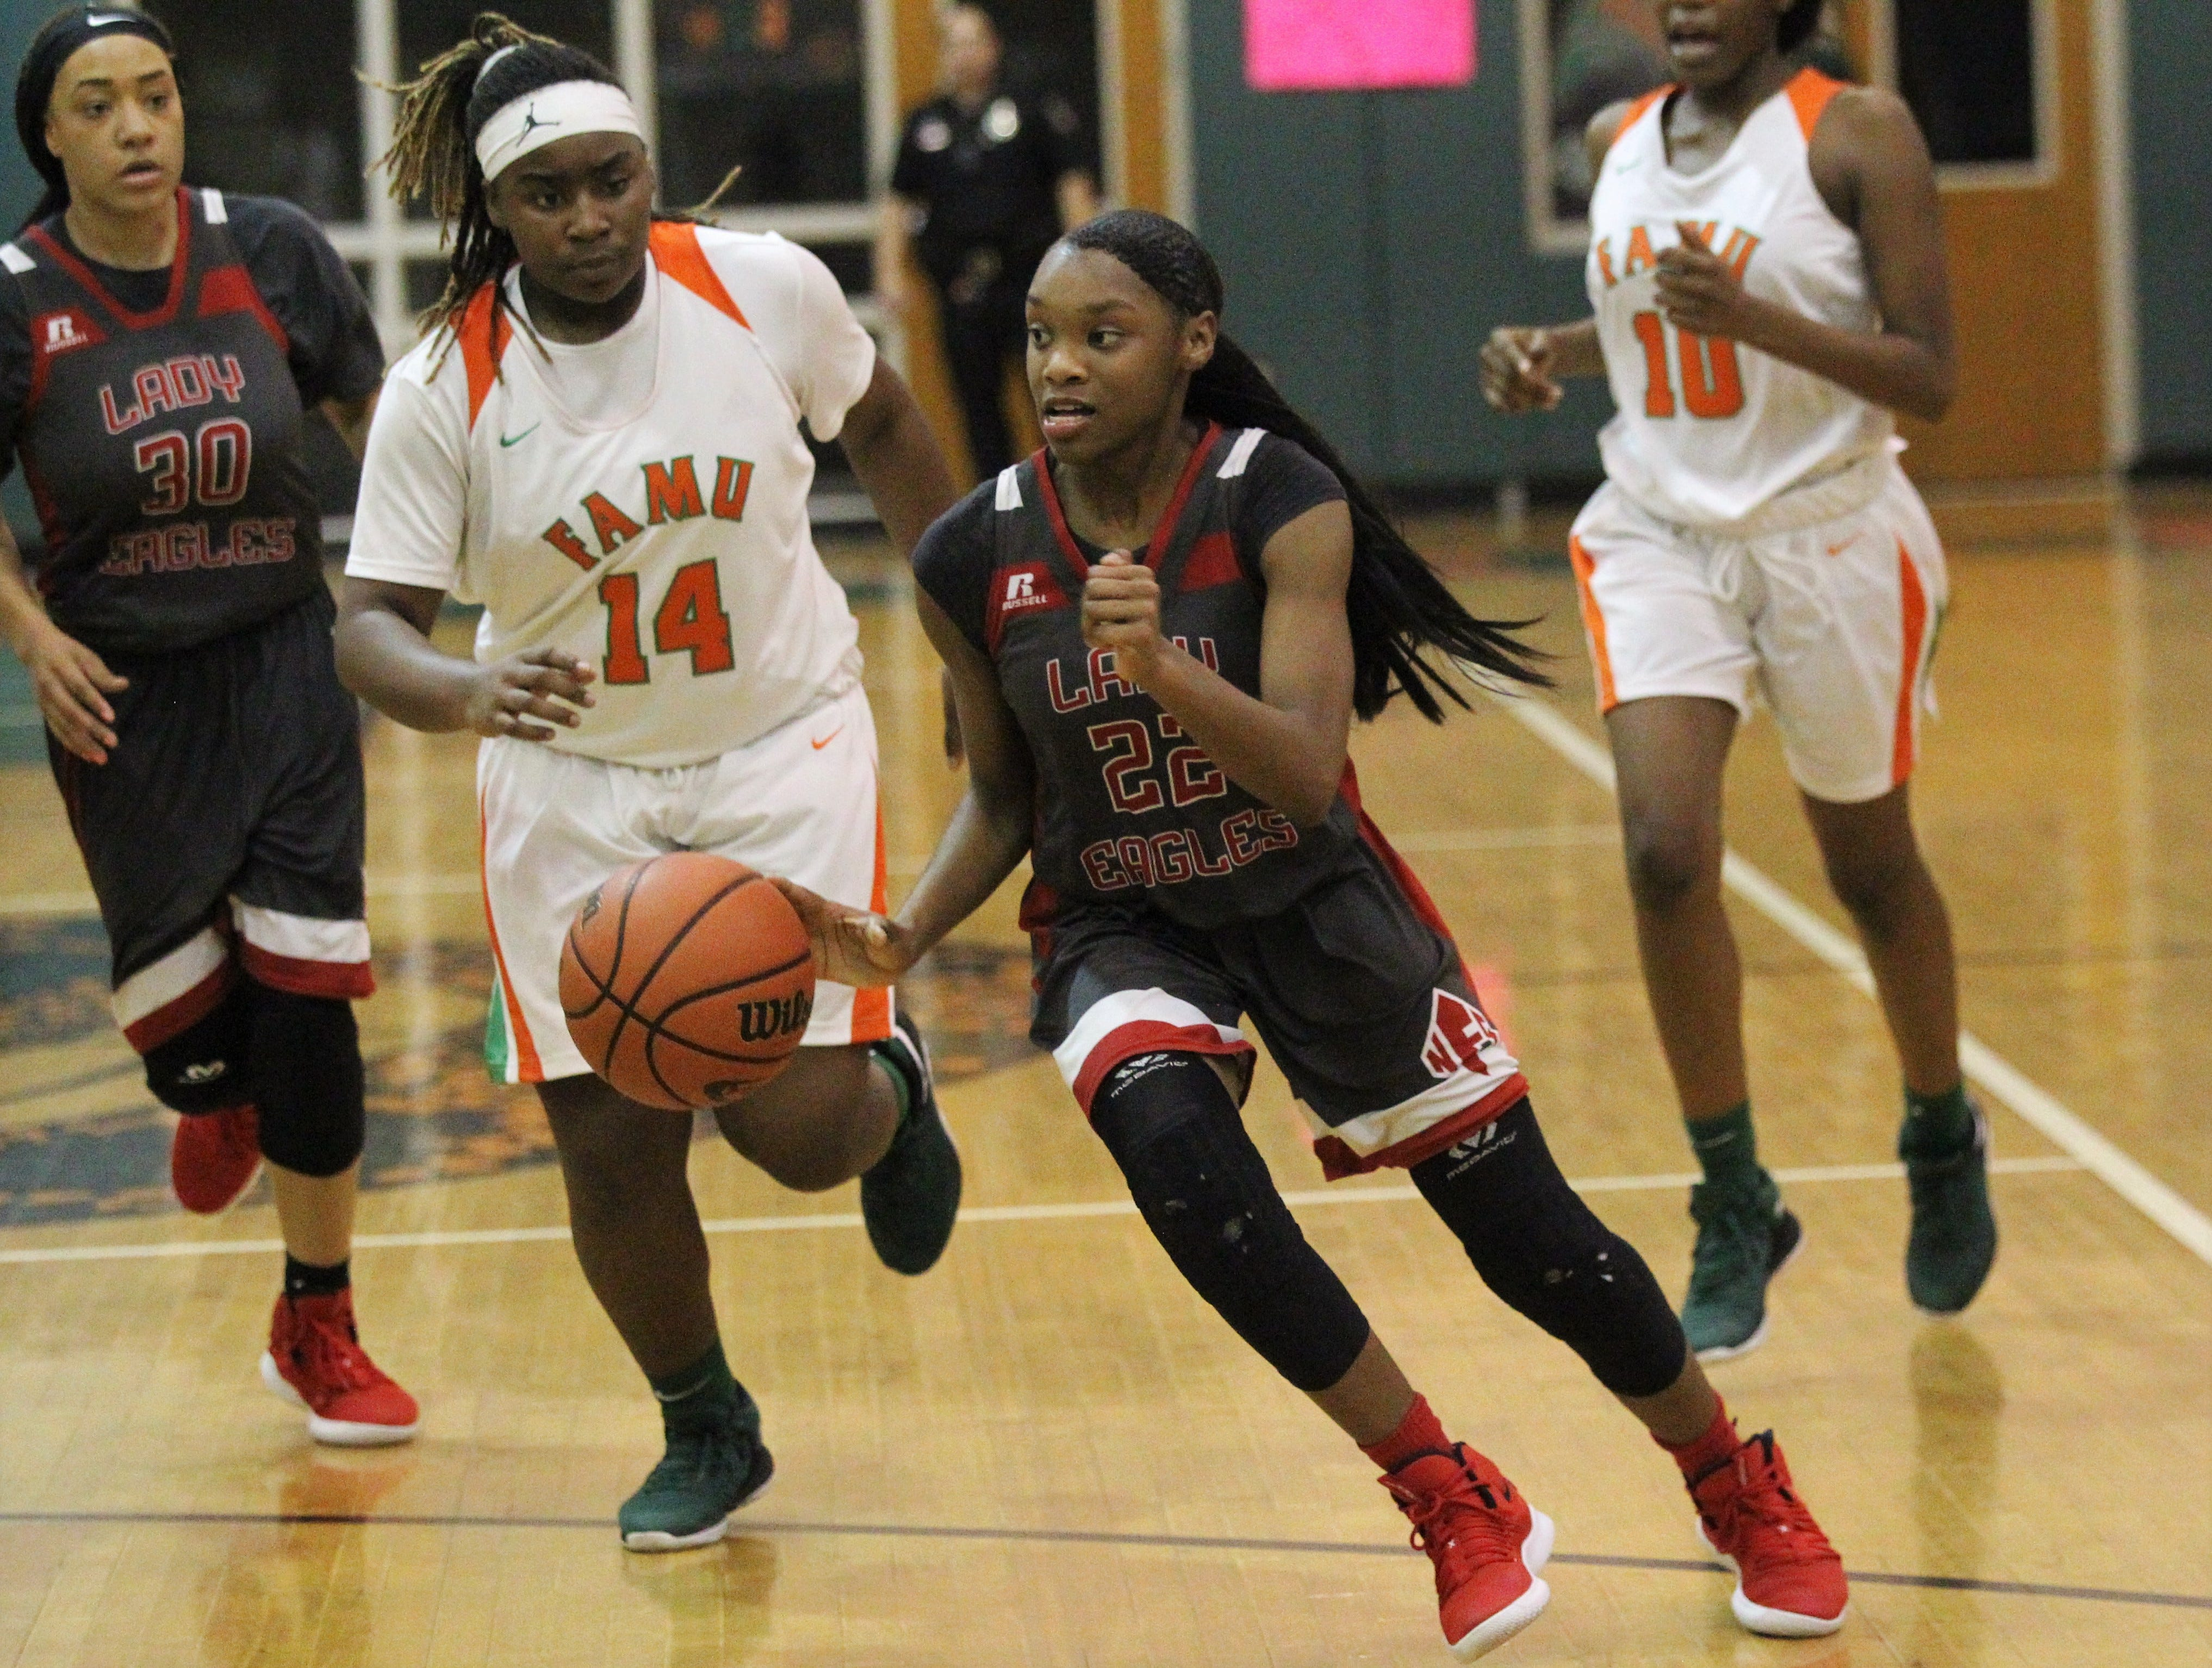 NFC junior Alexsis Thomas dribbles up the court as FAMU DRS' girls basketball team beat NFC 59-41 for a District 1-3A title on Jan. 7, 2019.